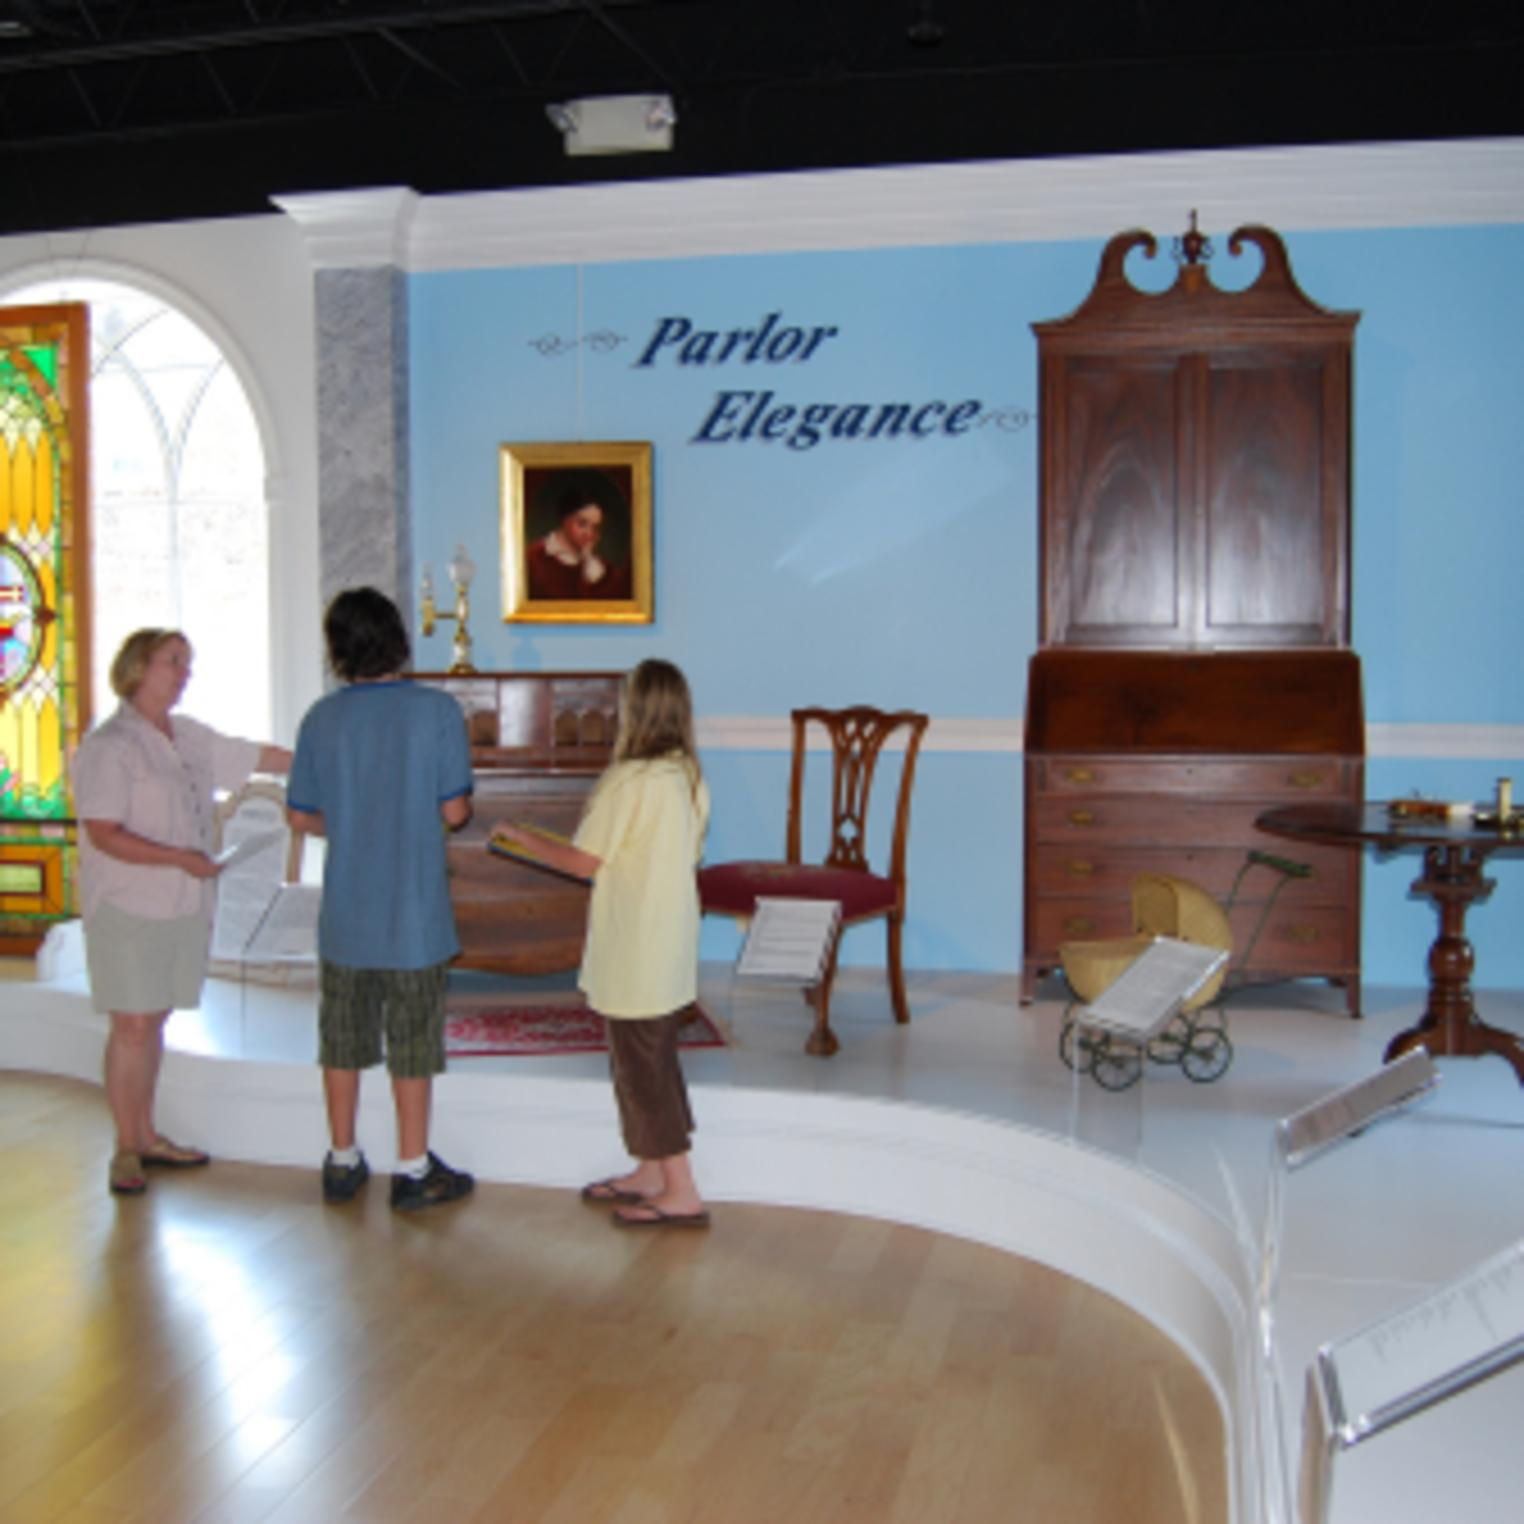 Parlor Elegance Exhibit at Cumberland County Historical Society